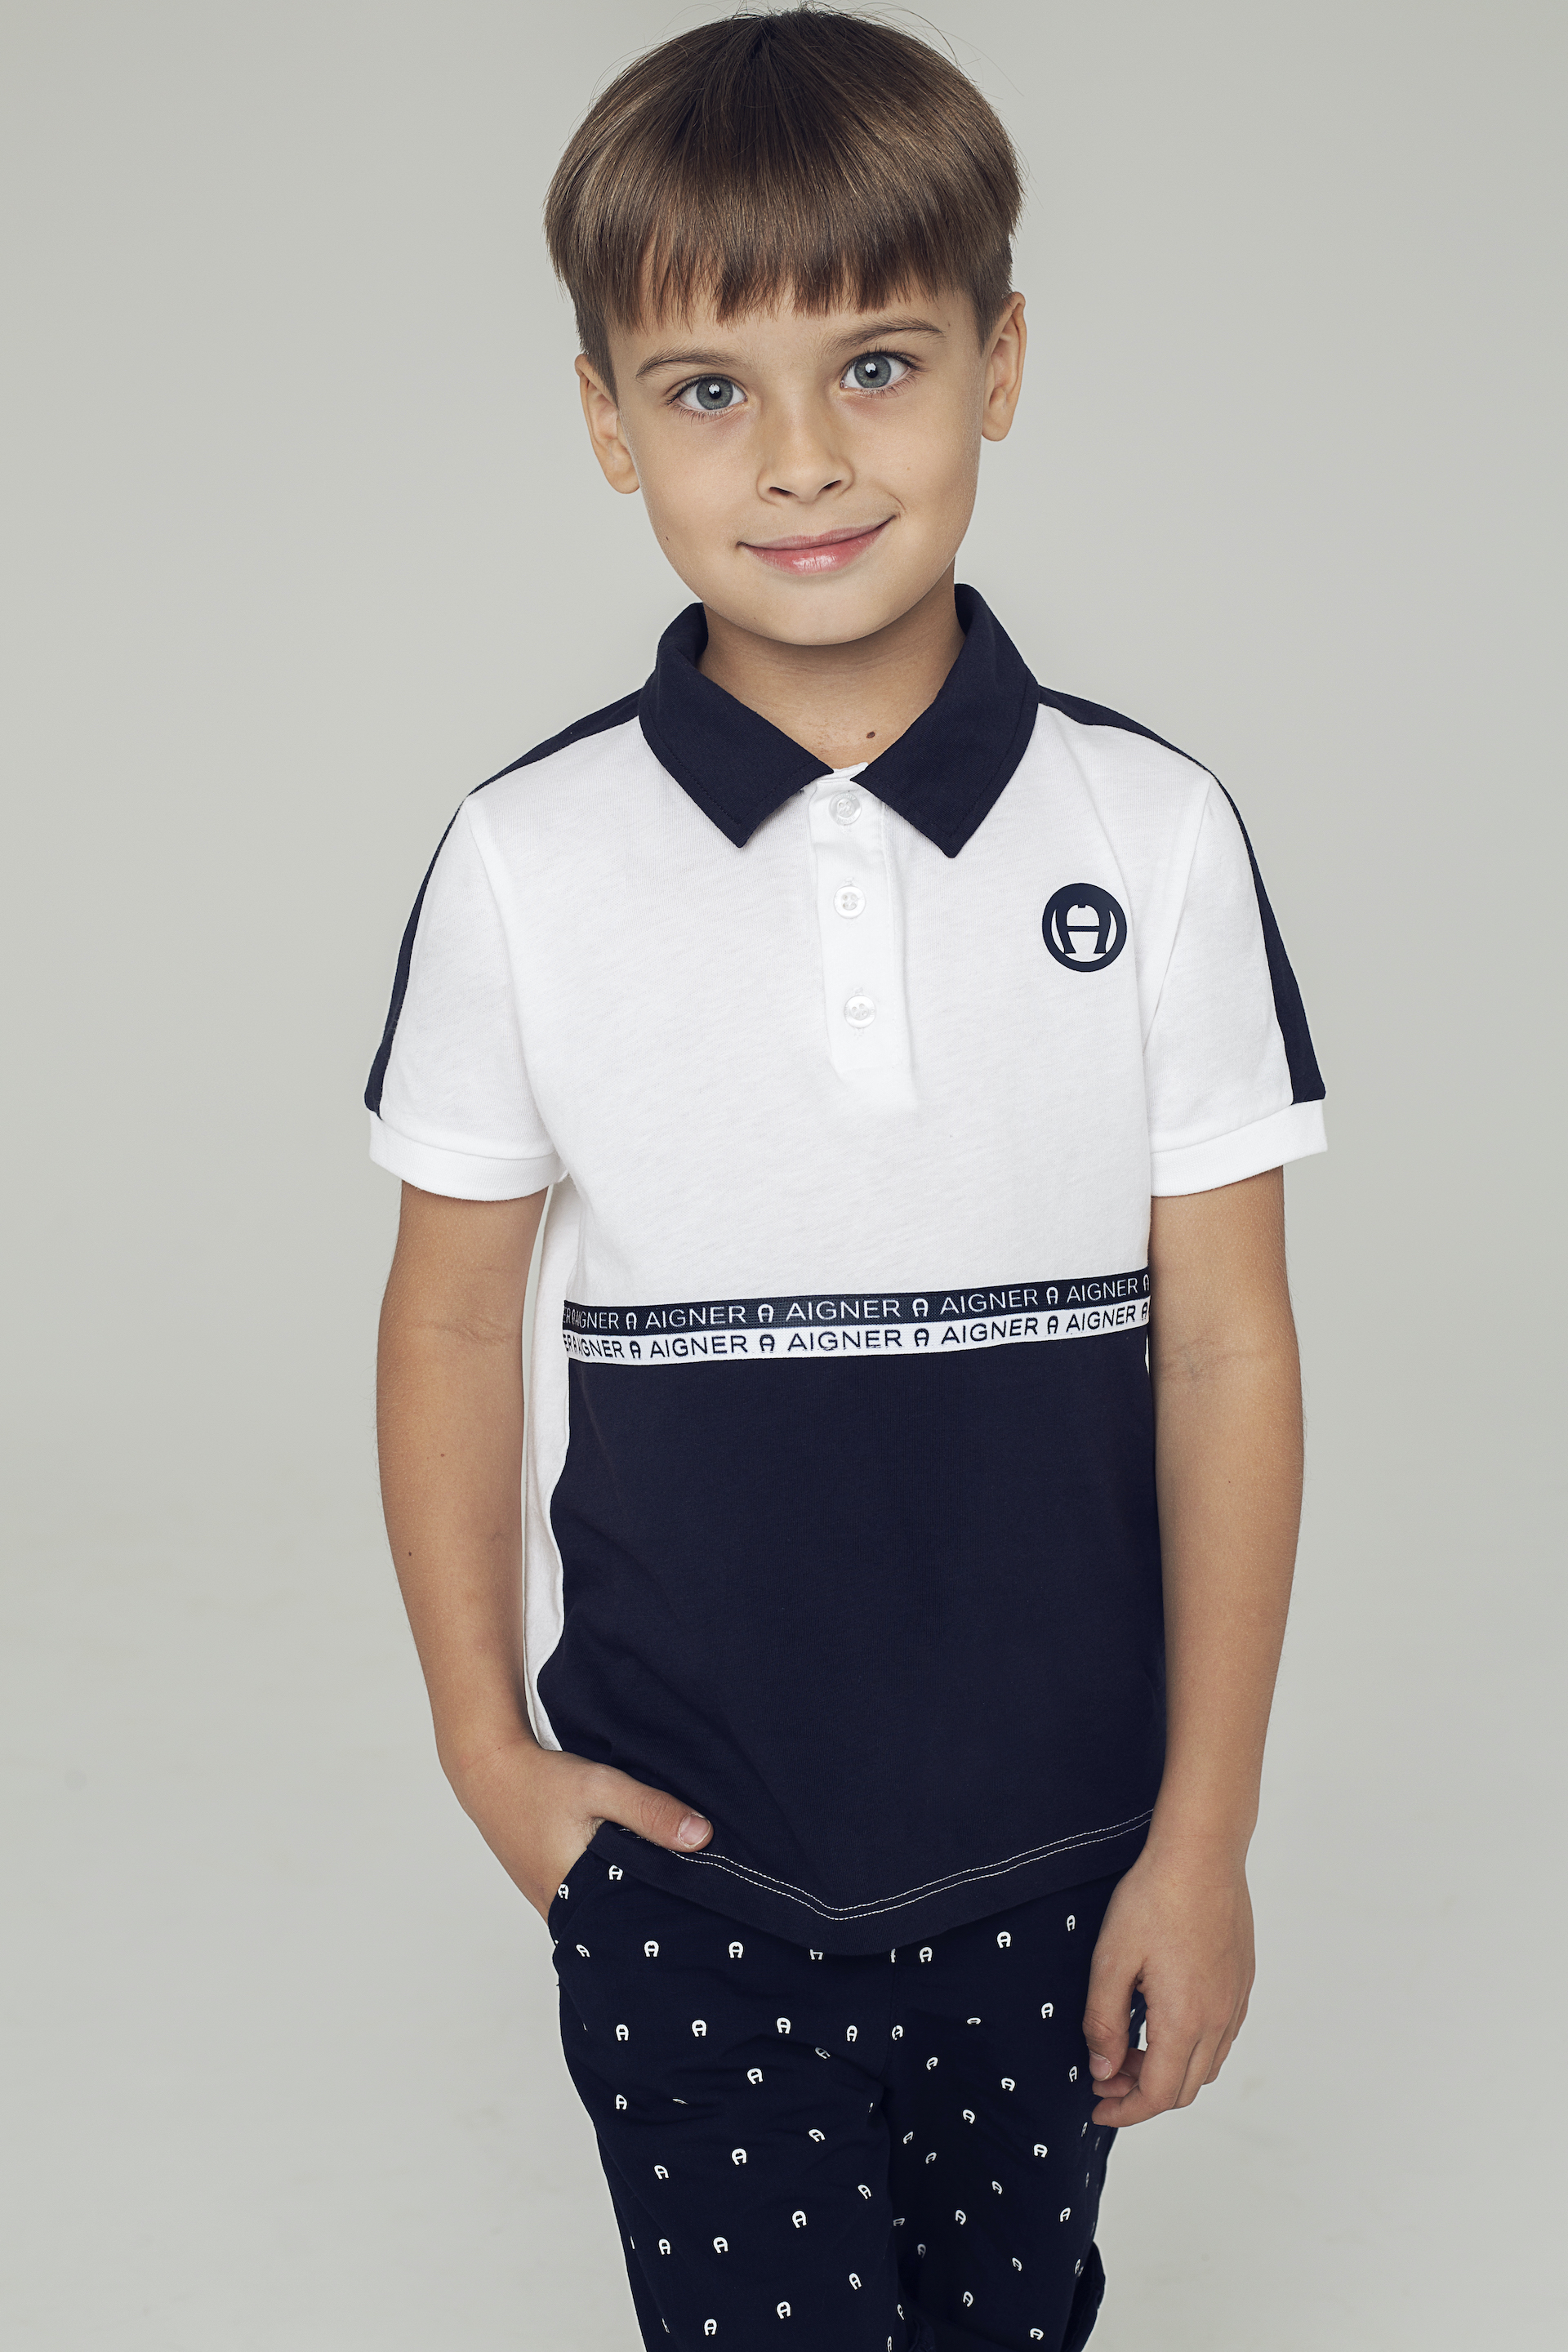 Aigner Kids_Outfitinspiration_Frühjahr_Sommer_2021_3